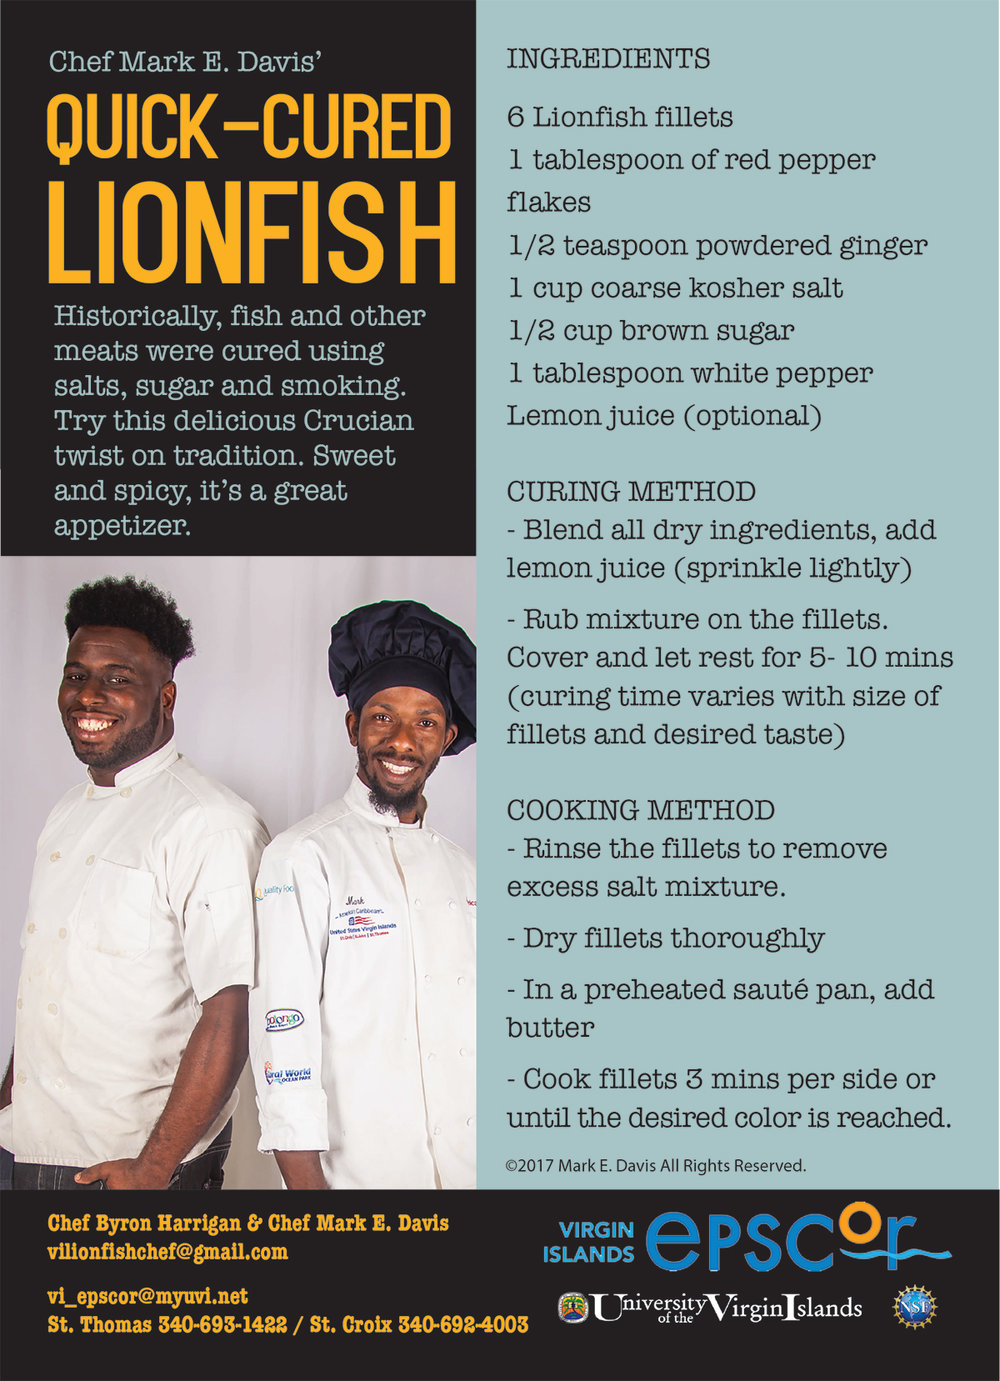 Quick-Cured Lionfish Recipe courtesy of Chef Byron and Chef Mark